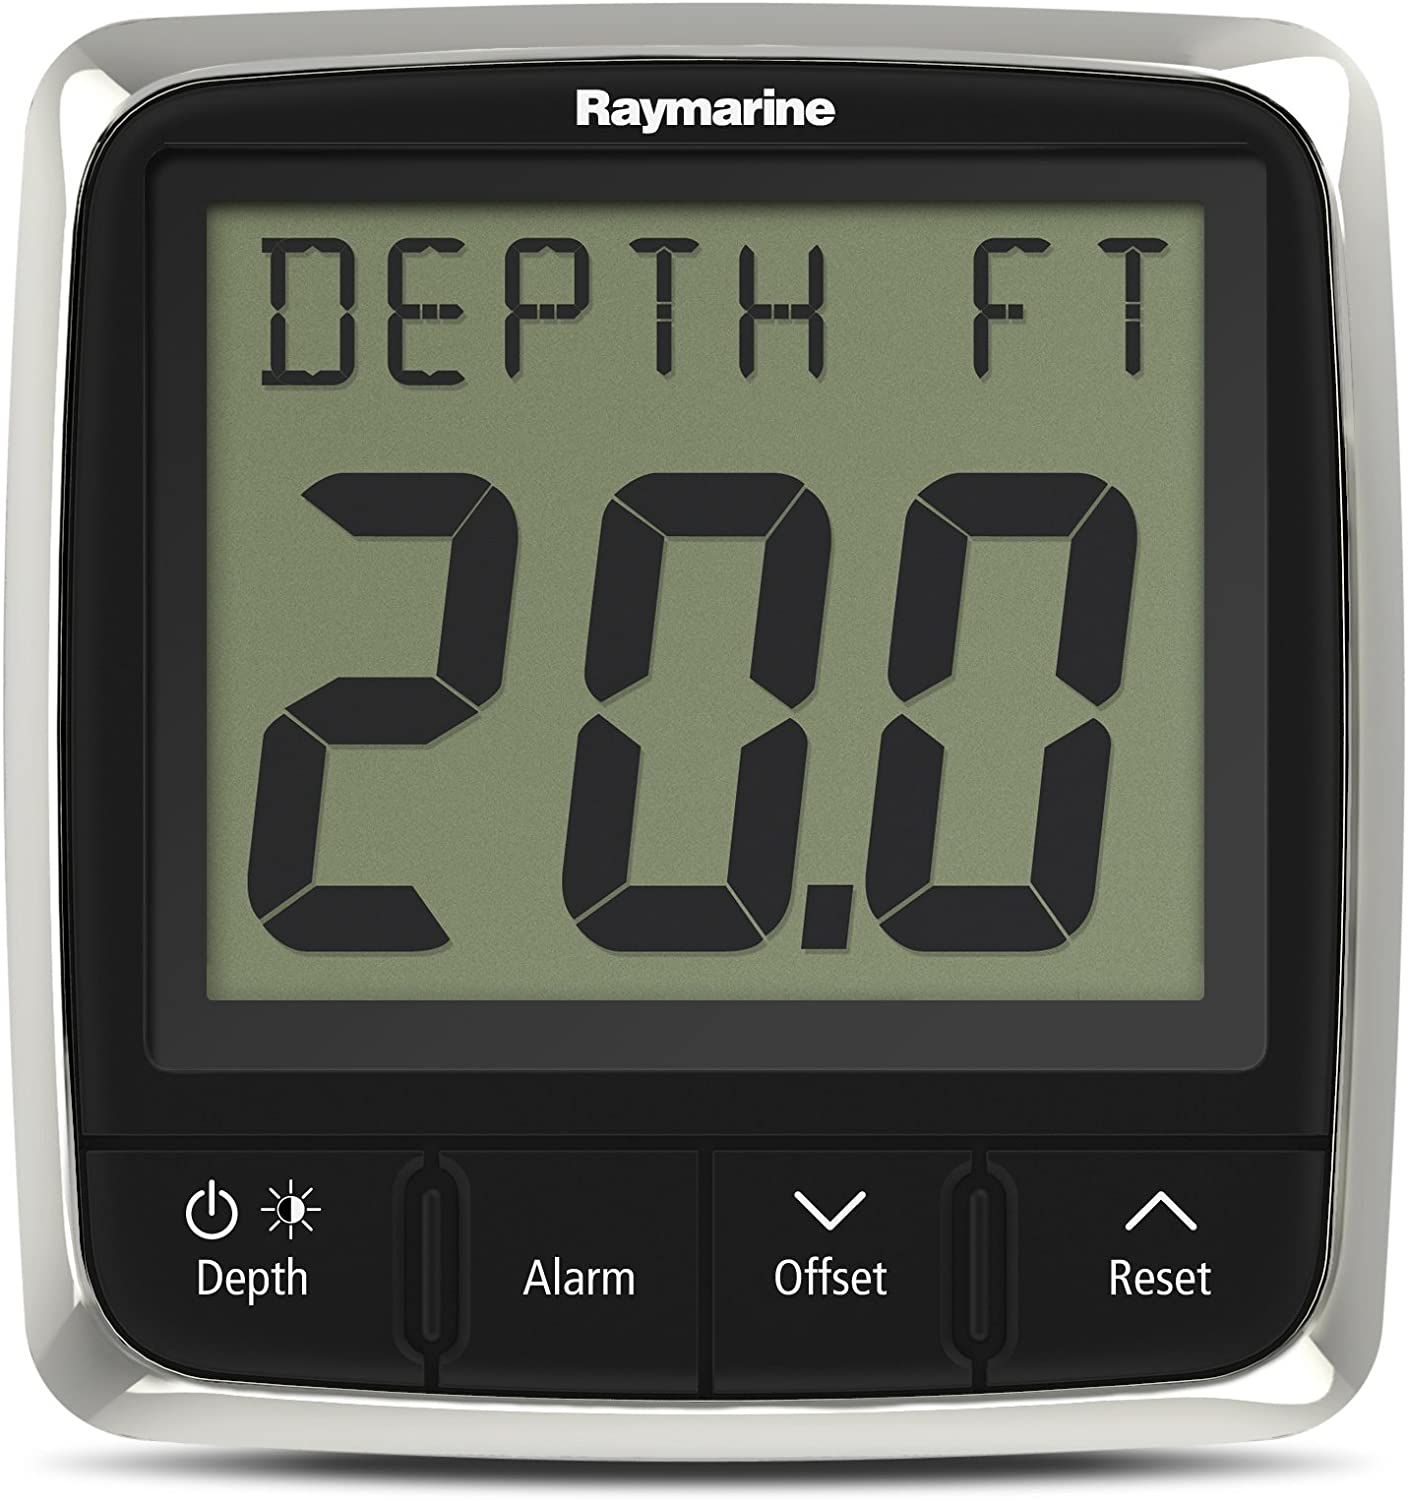 Raymarine I50 Tridata Display Digital, Negro: Amazon.es: Deportes y aire libre